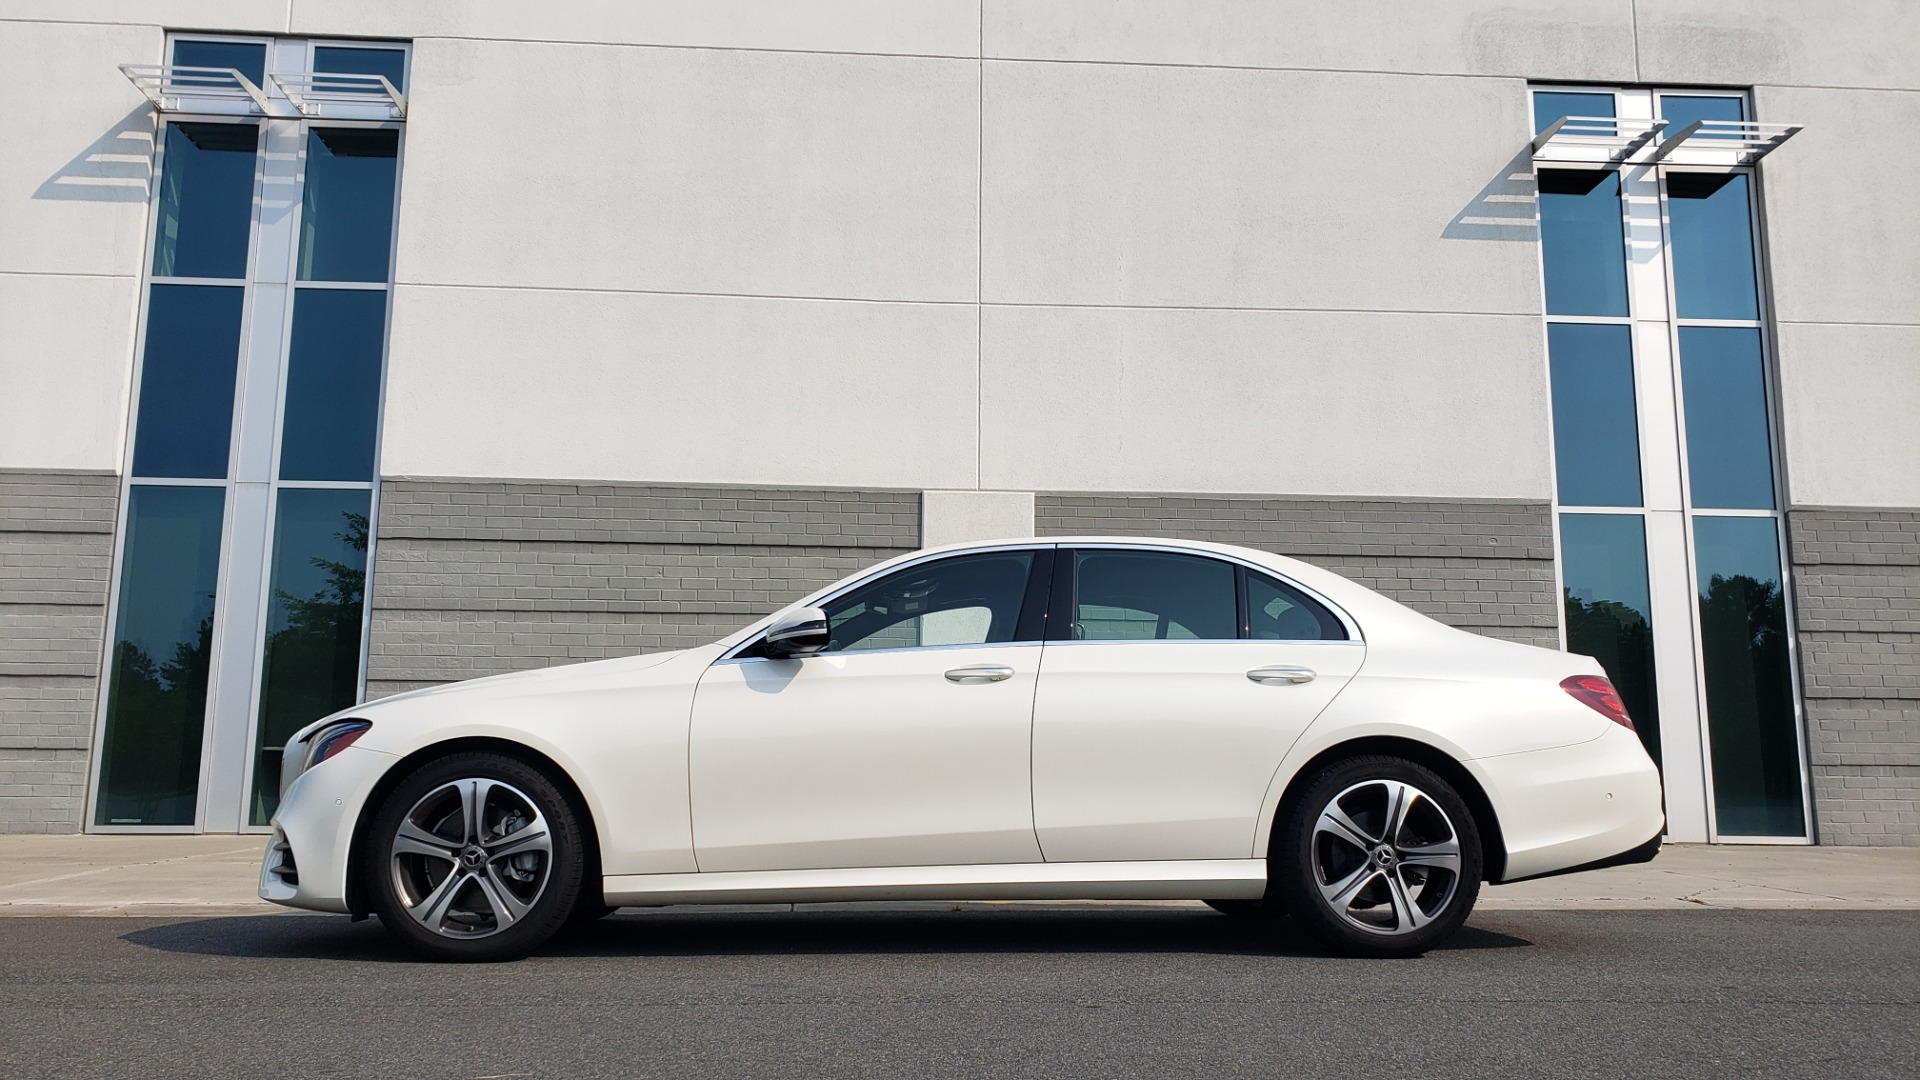 Used 2018 Mercedes-Benz E-CLASS E 300 4MATIC / PREMIUM / NAV / PANO-ROOF / BURMESTER / REARVIEW for sale $41,995 at Formula Imports in Charlotte NC 28227 6